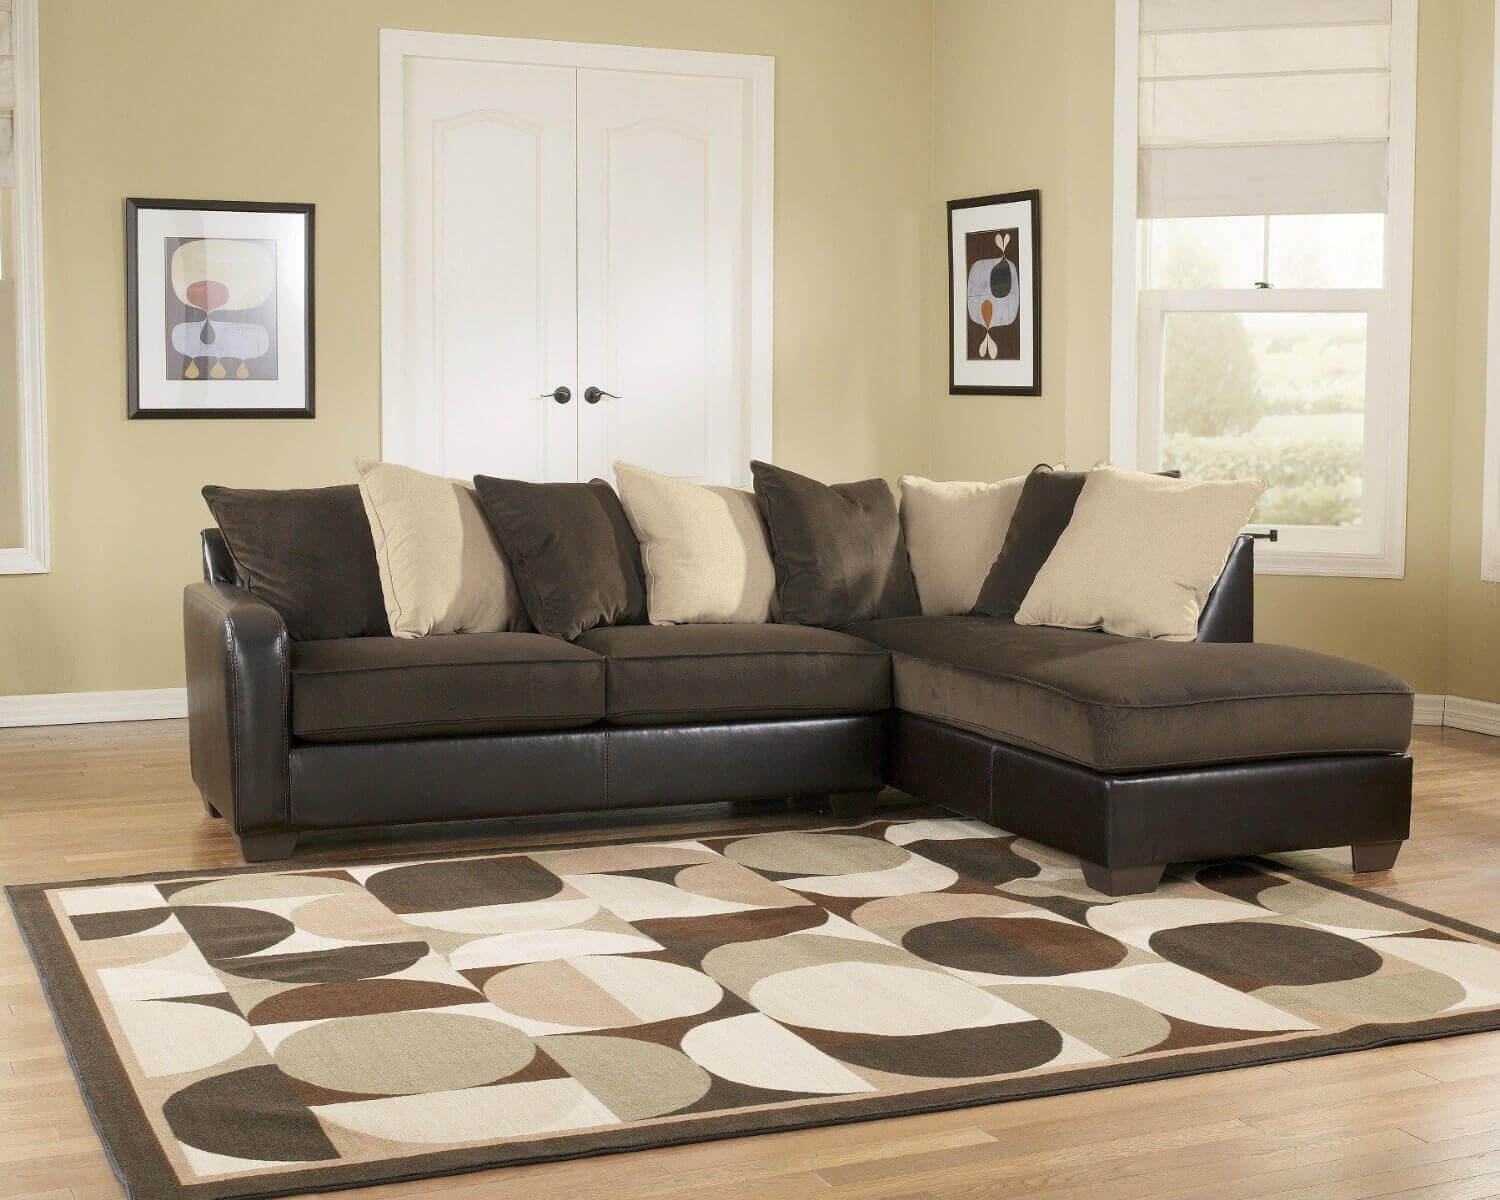 table there design is shaped classic and sofa sectional affordable rectangular box brown cushion sectionals carpet inspirations uncategorized plus a then u fabric unique sofas soft